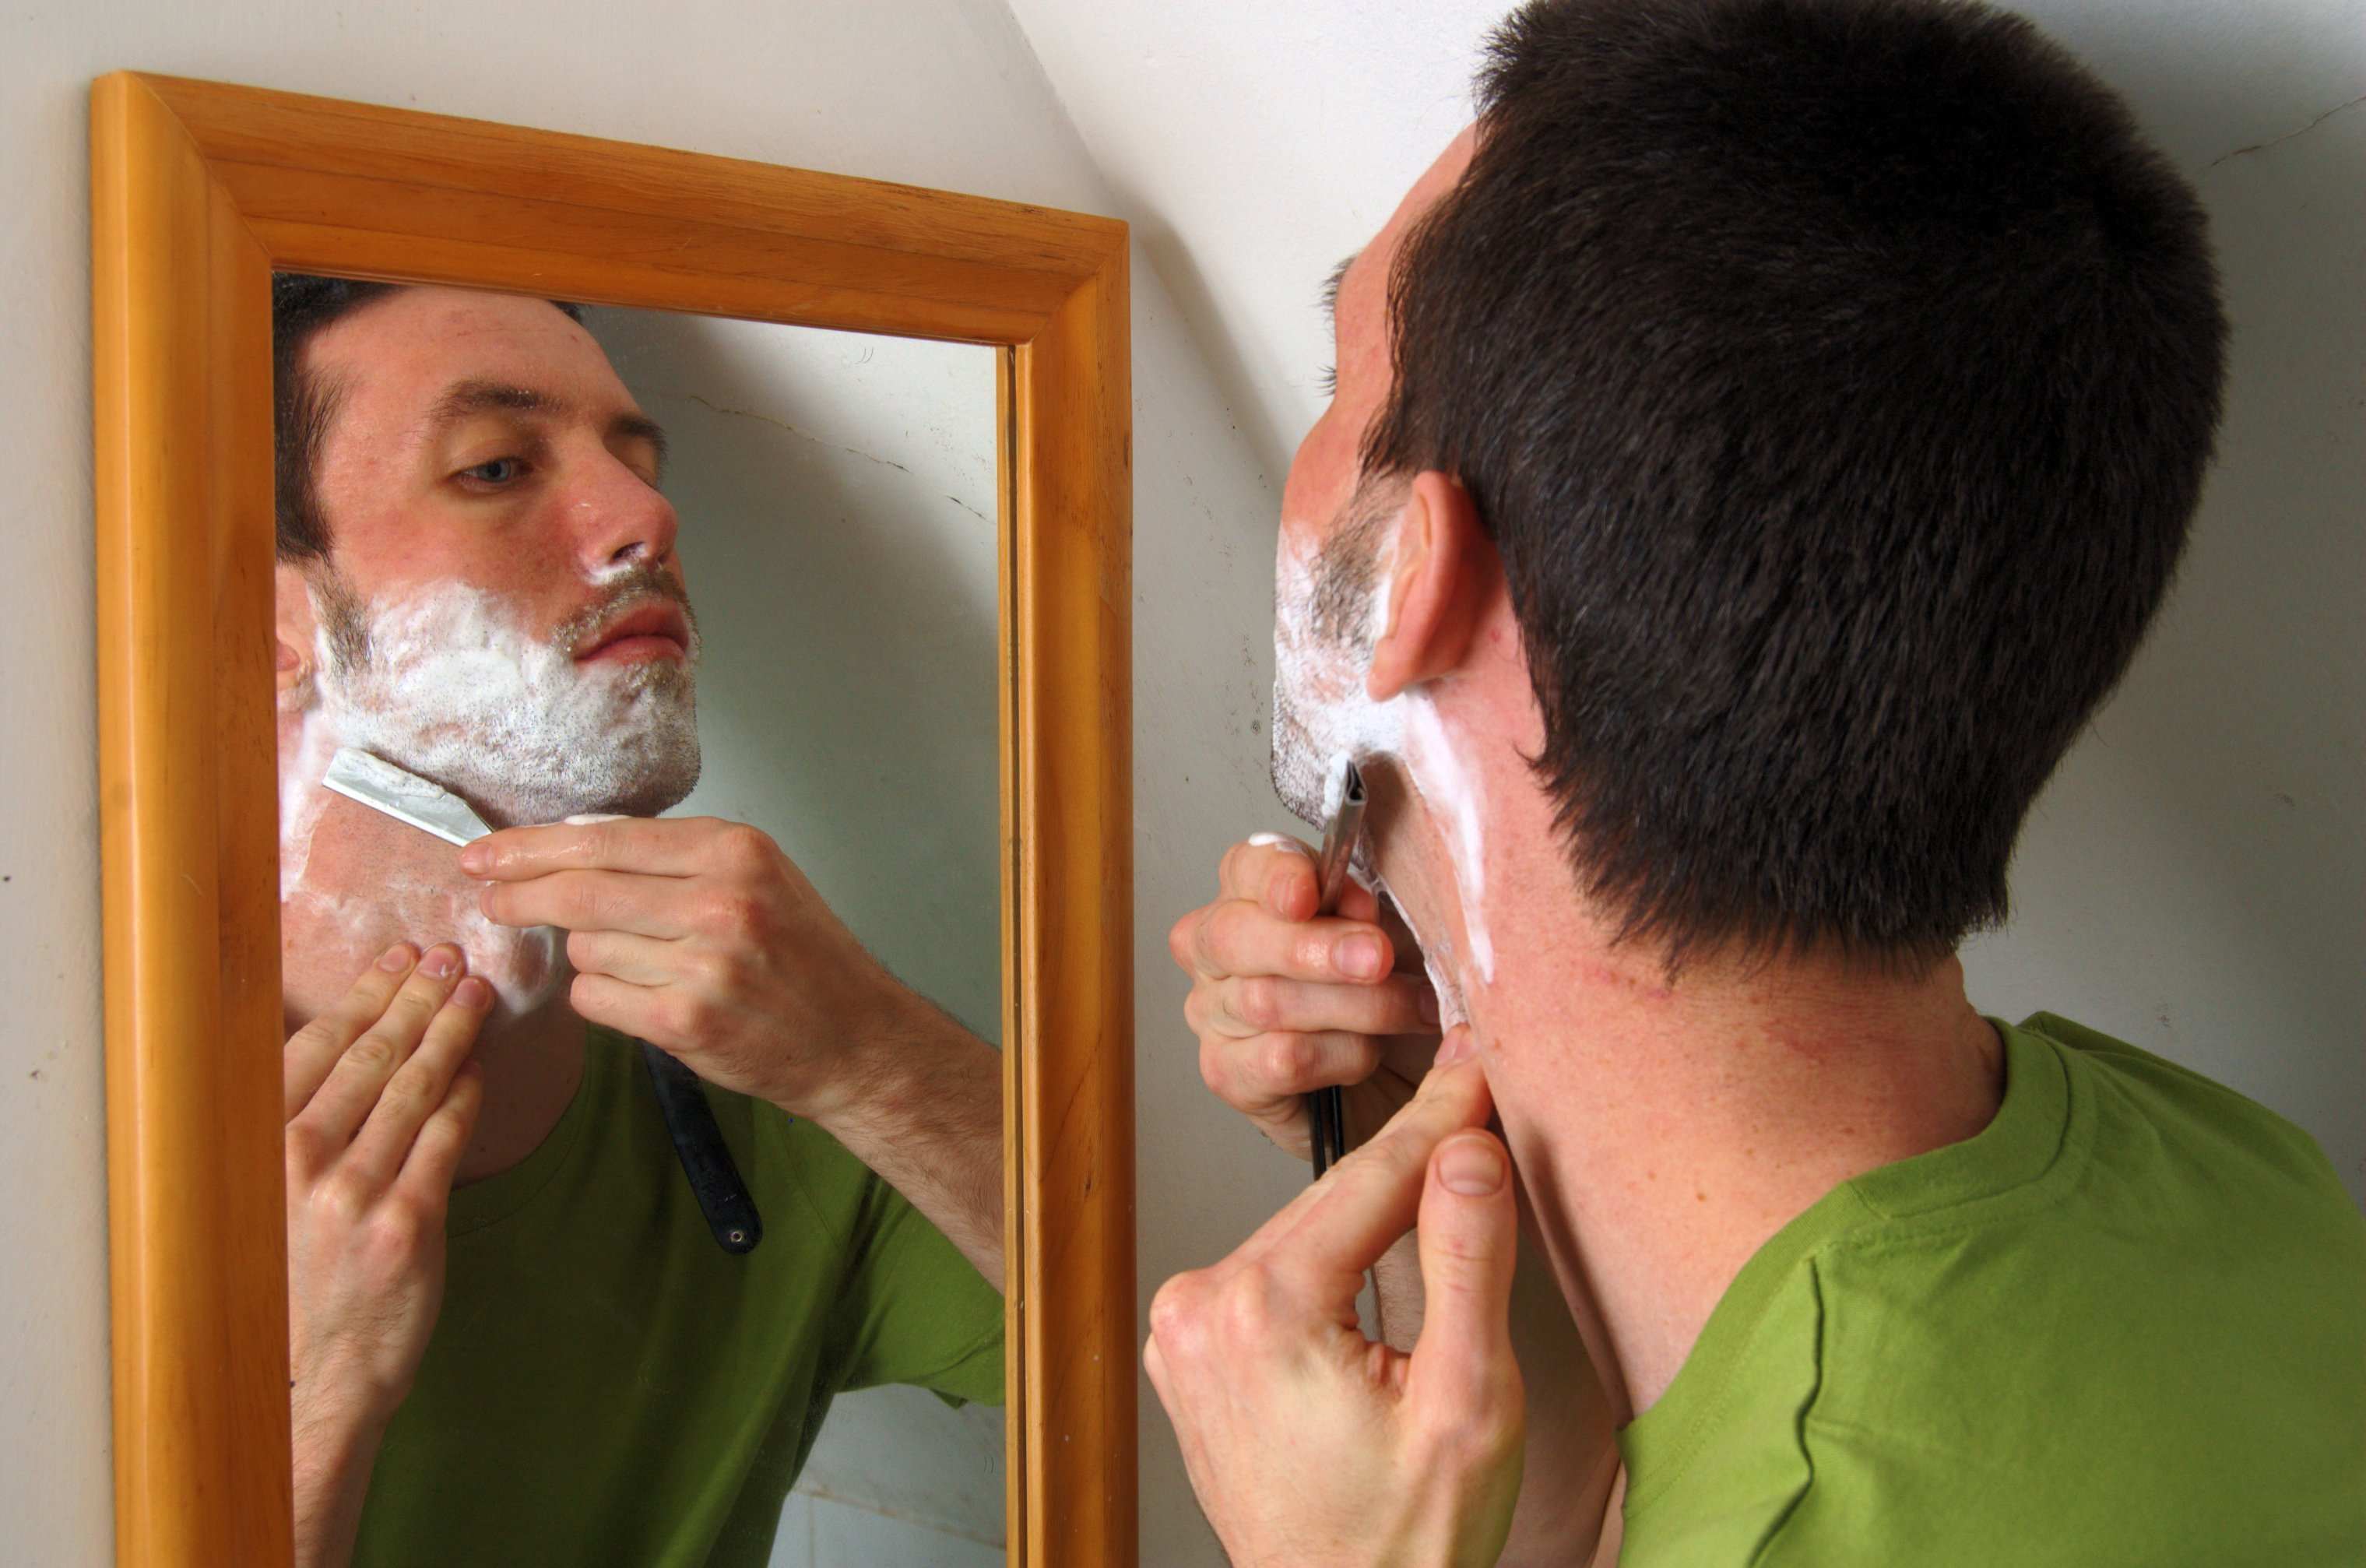 shaving by leslie norris tah essay An open world: essays on leslie norris, camden house, columbia, sc, 1994 chapter 5 on leslie norris, of wordsworth's influence on 20th century welsh poets, unpublished dissertation by james prothero in the national library of wales and university of wales.